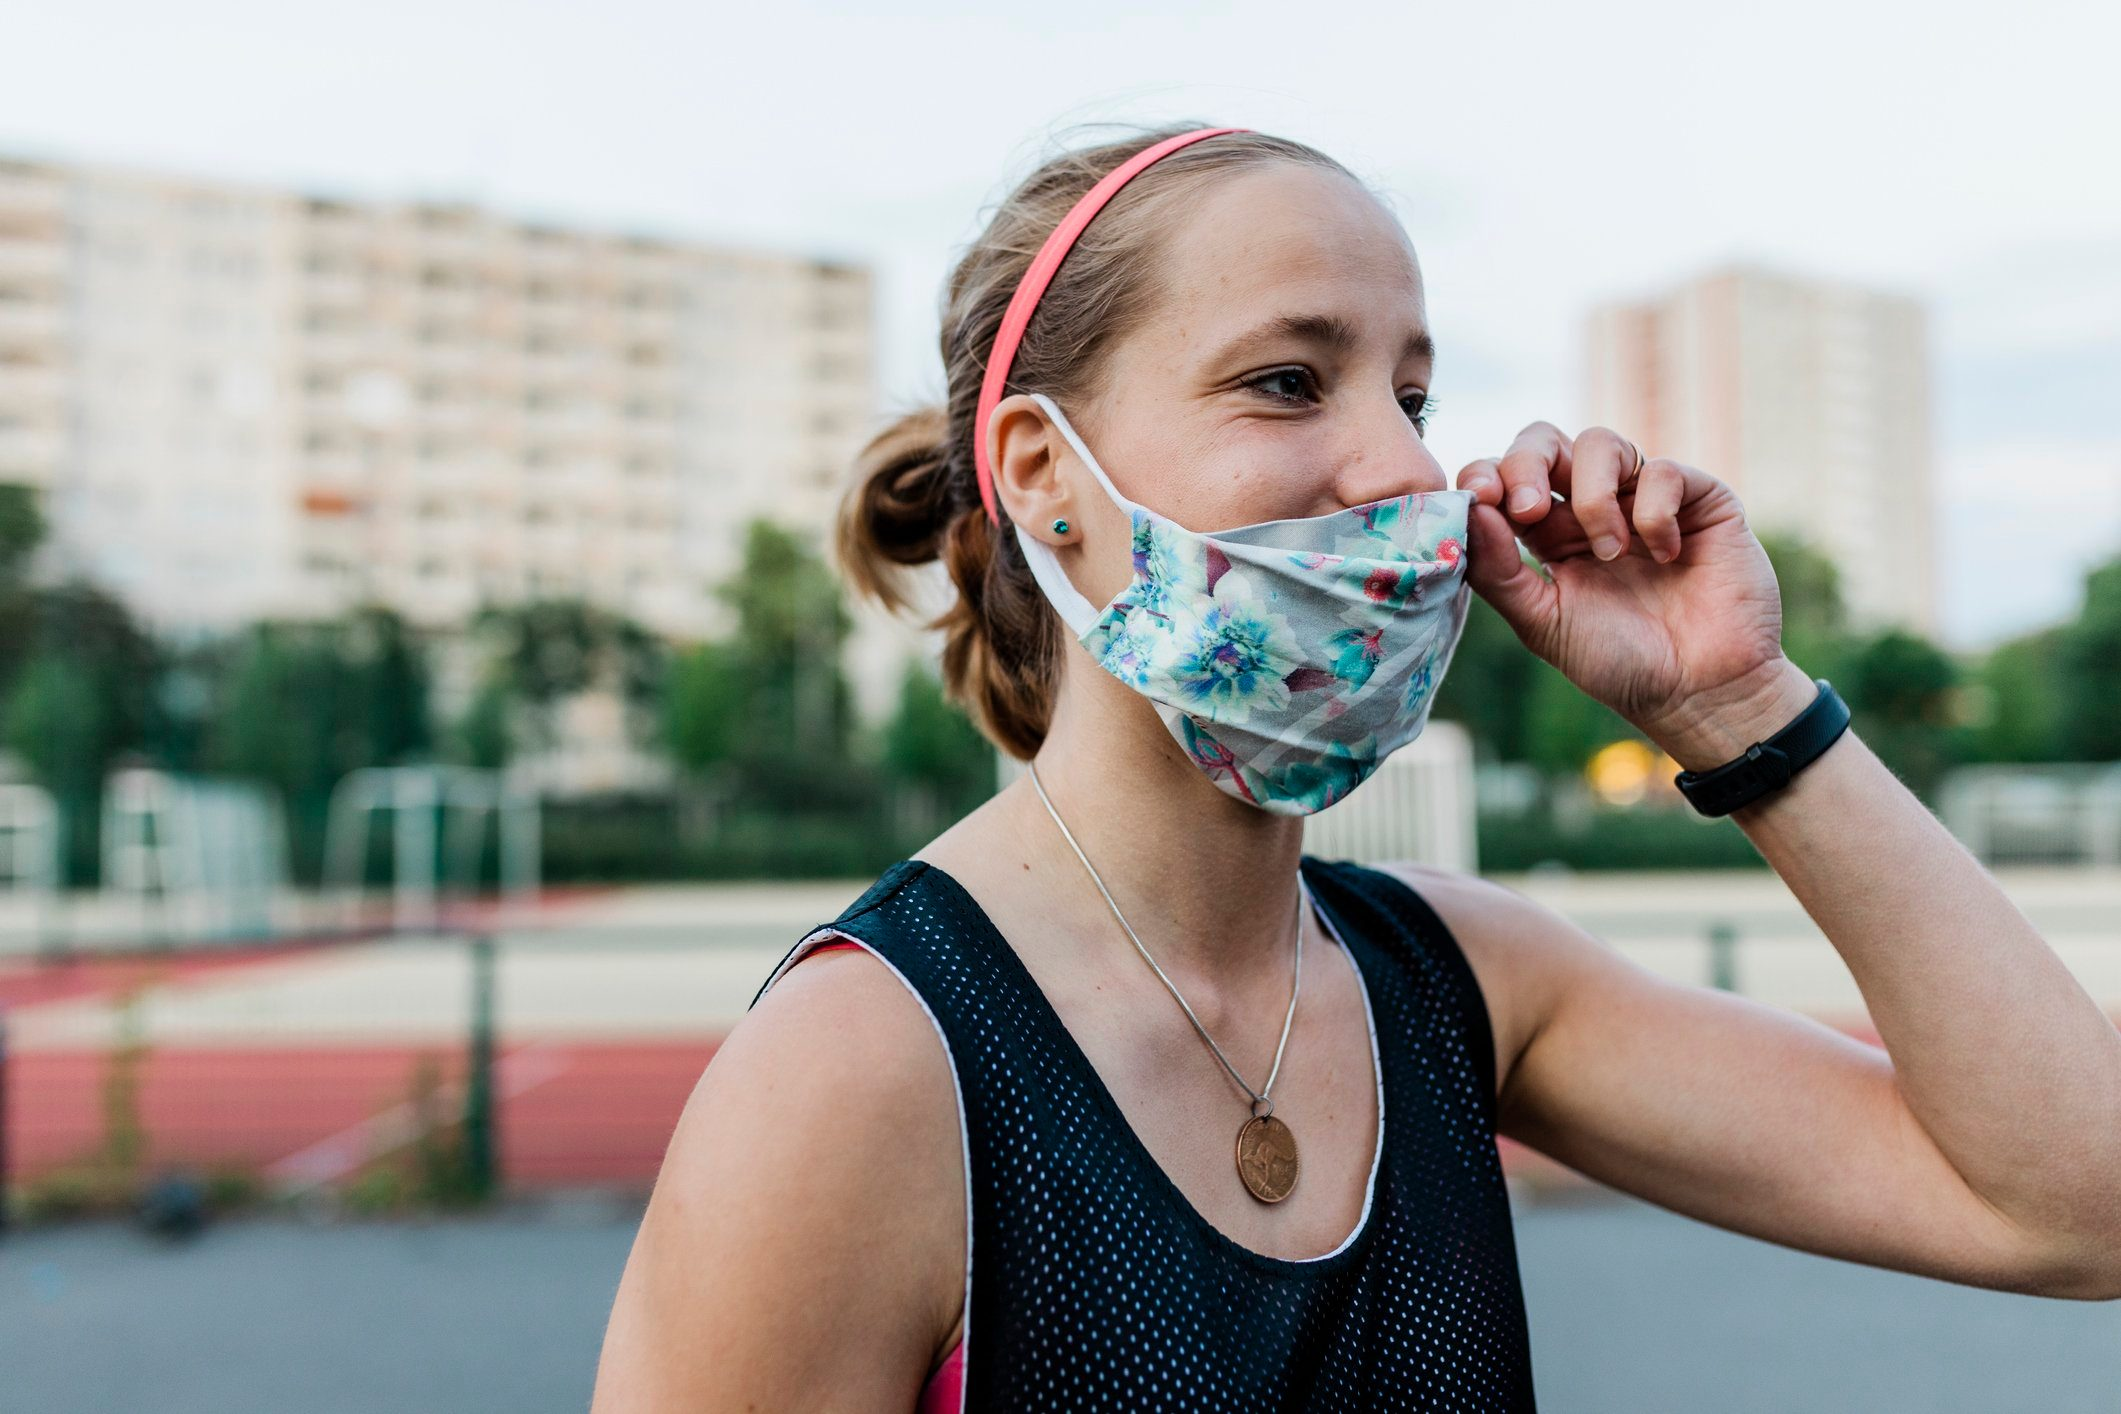 woman putting on face mask outside